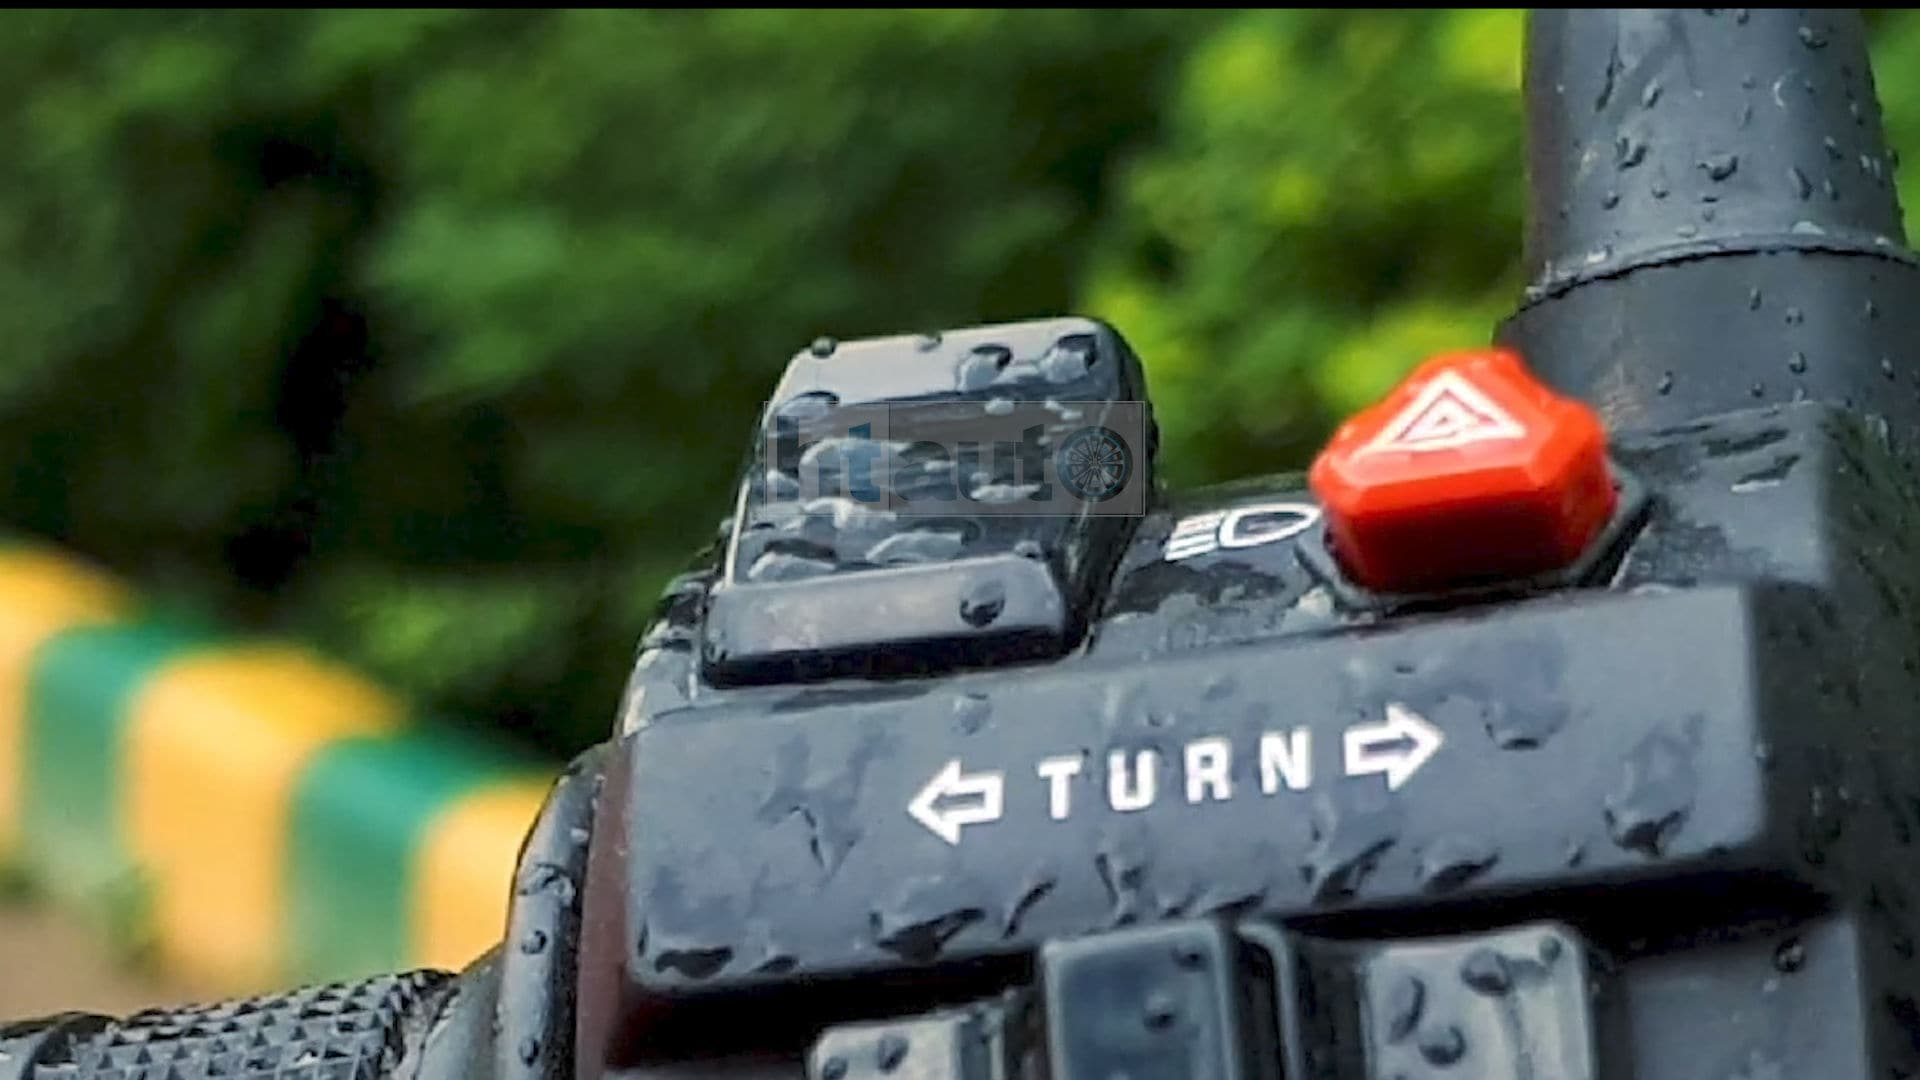 The switchgear quality on the Xtreme 160R is decent, and it also gets a hazard button unlike many of its competitors. Picture Courtesy: Sabyasachi Dasgupta